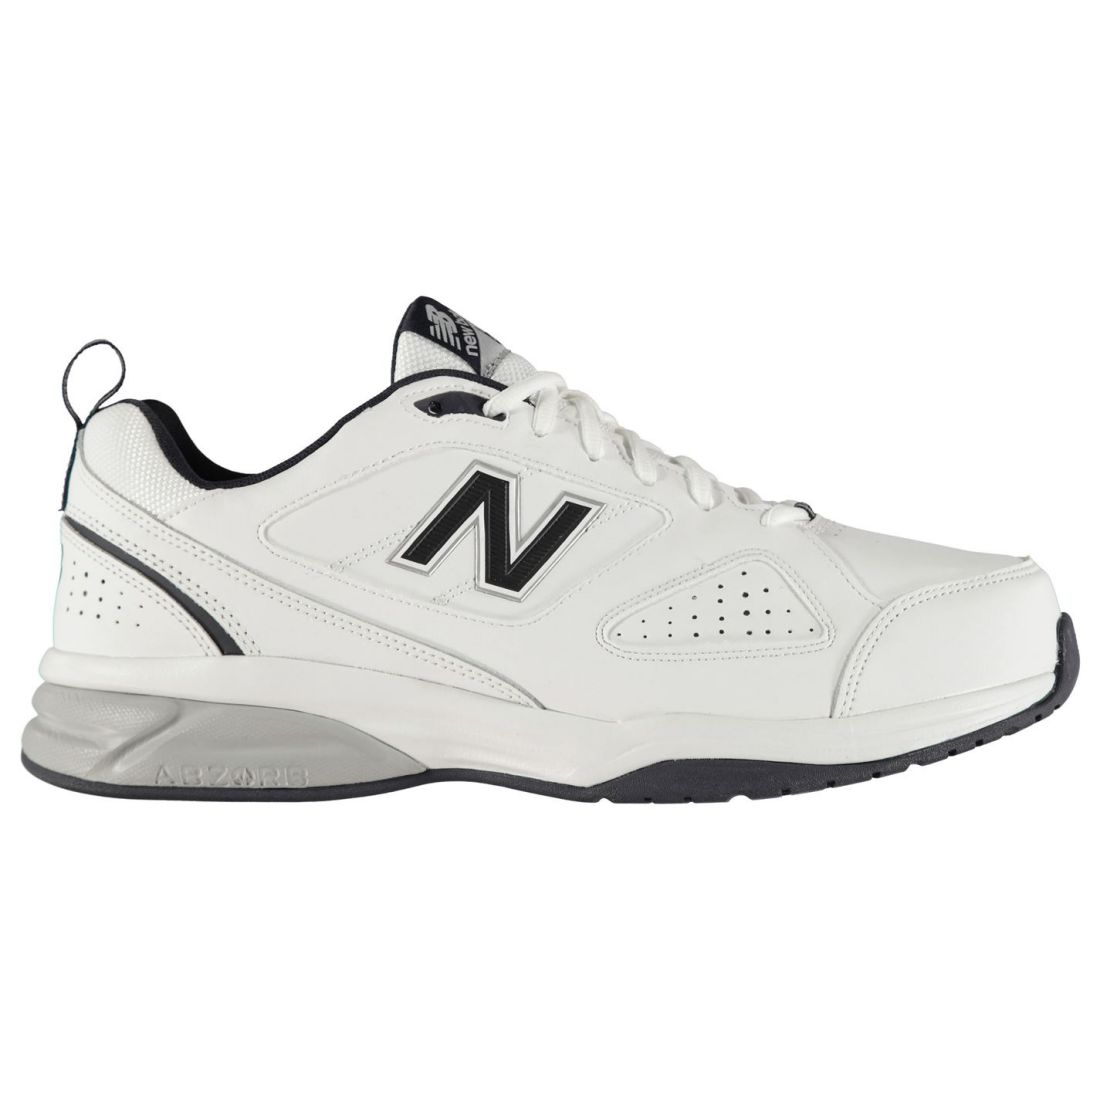 Details about New Balance Mens 624x4 Indoor Trainers Road Running Shoes  Lace Up Breathable a6b9691173